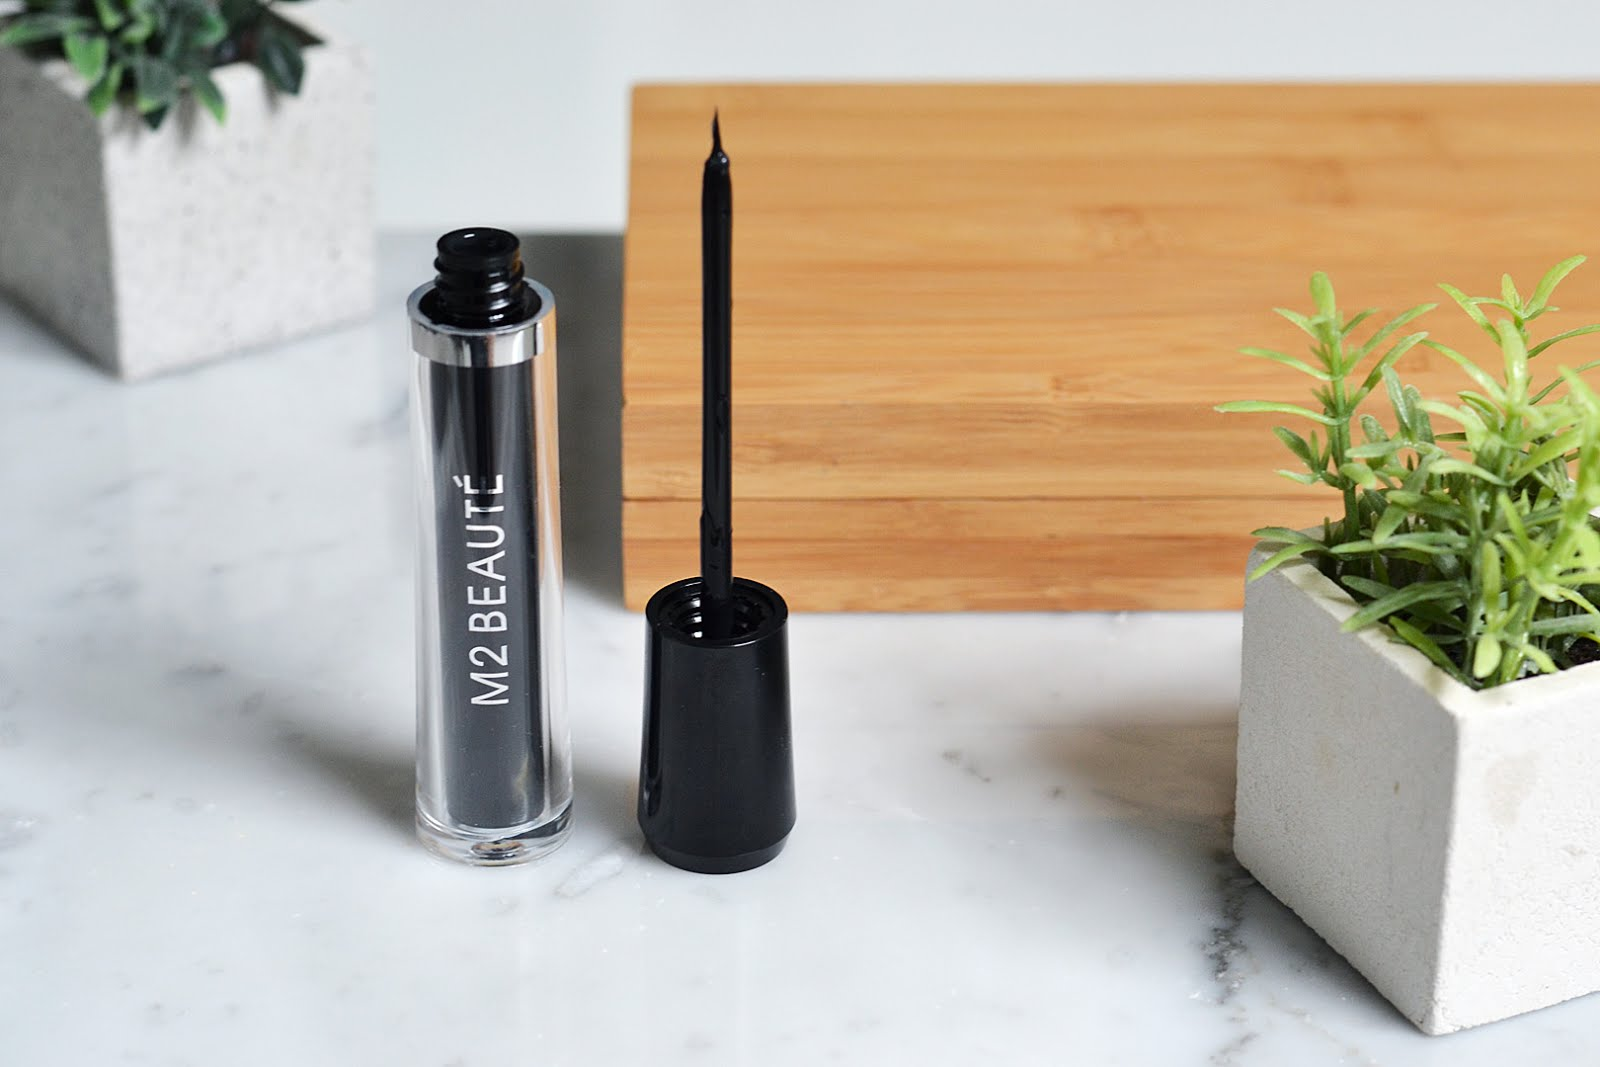 Eyelash activating serum, M2 beauté, beautyblogger, belgian blogger, belgische blogger